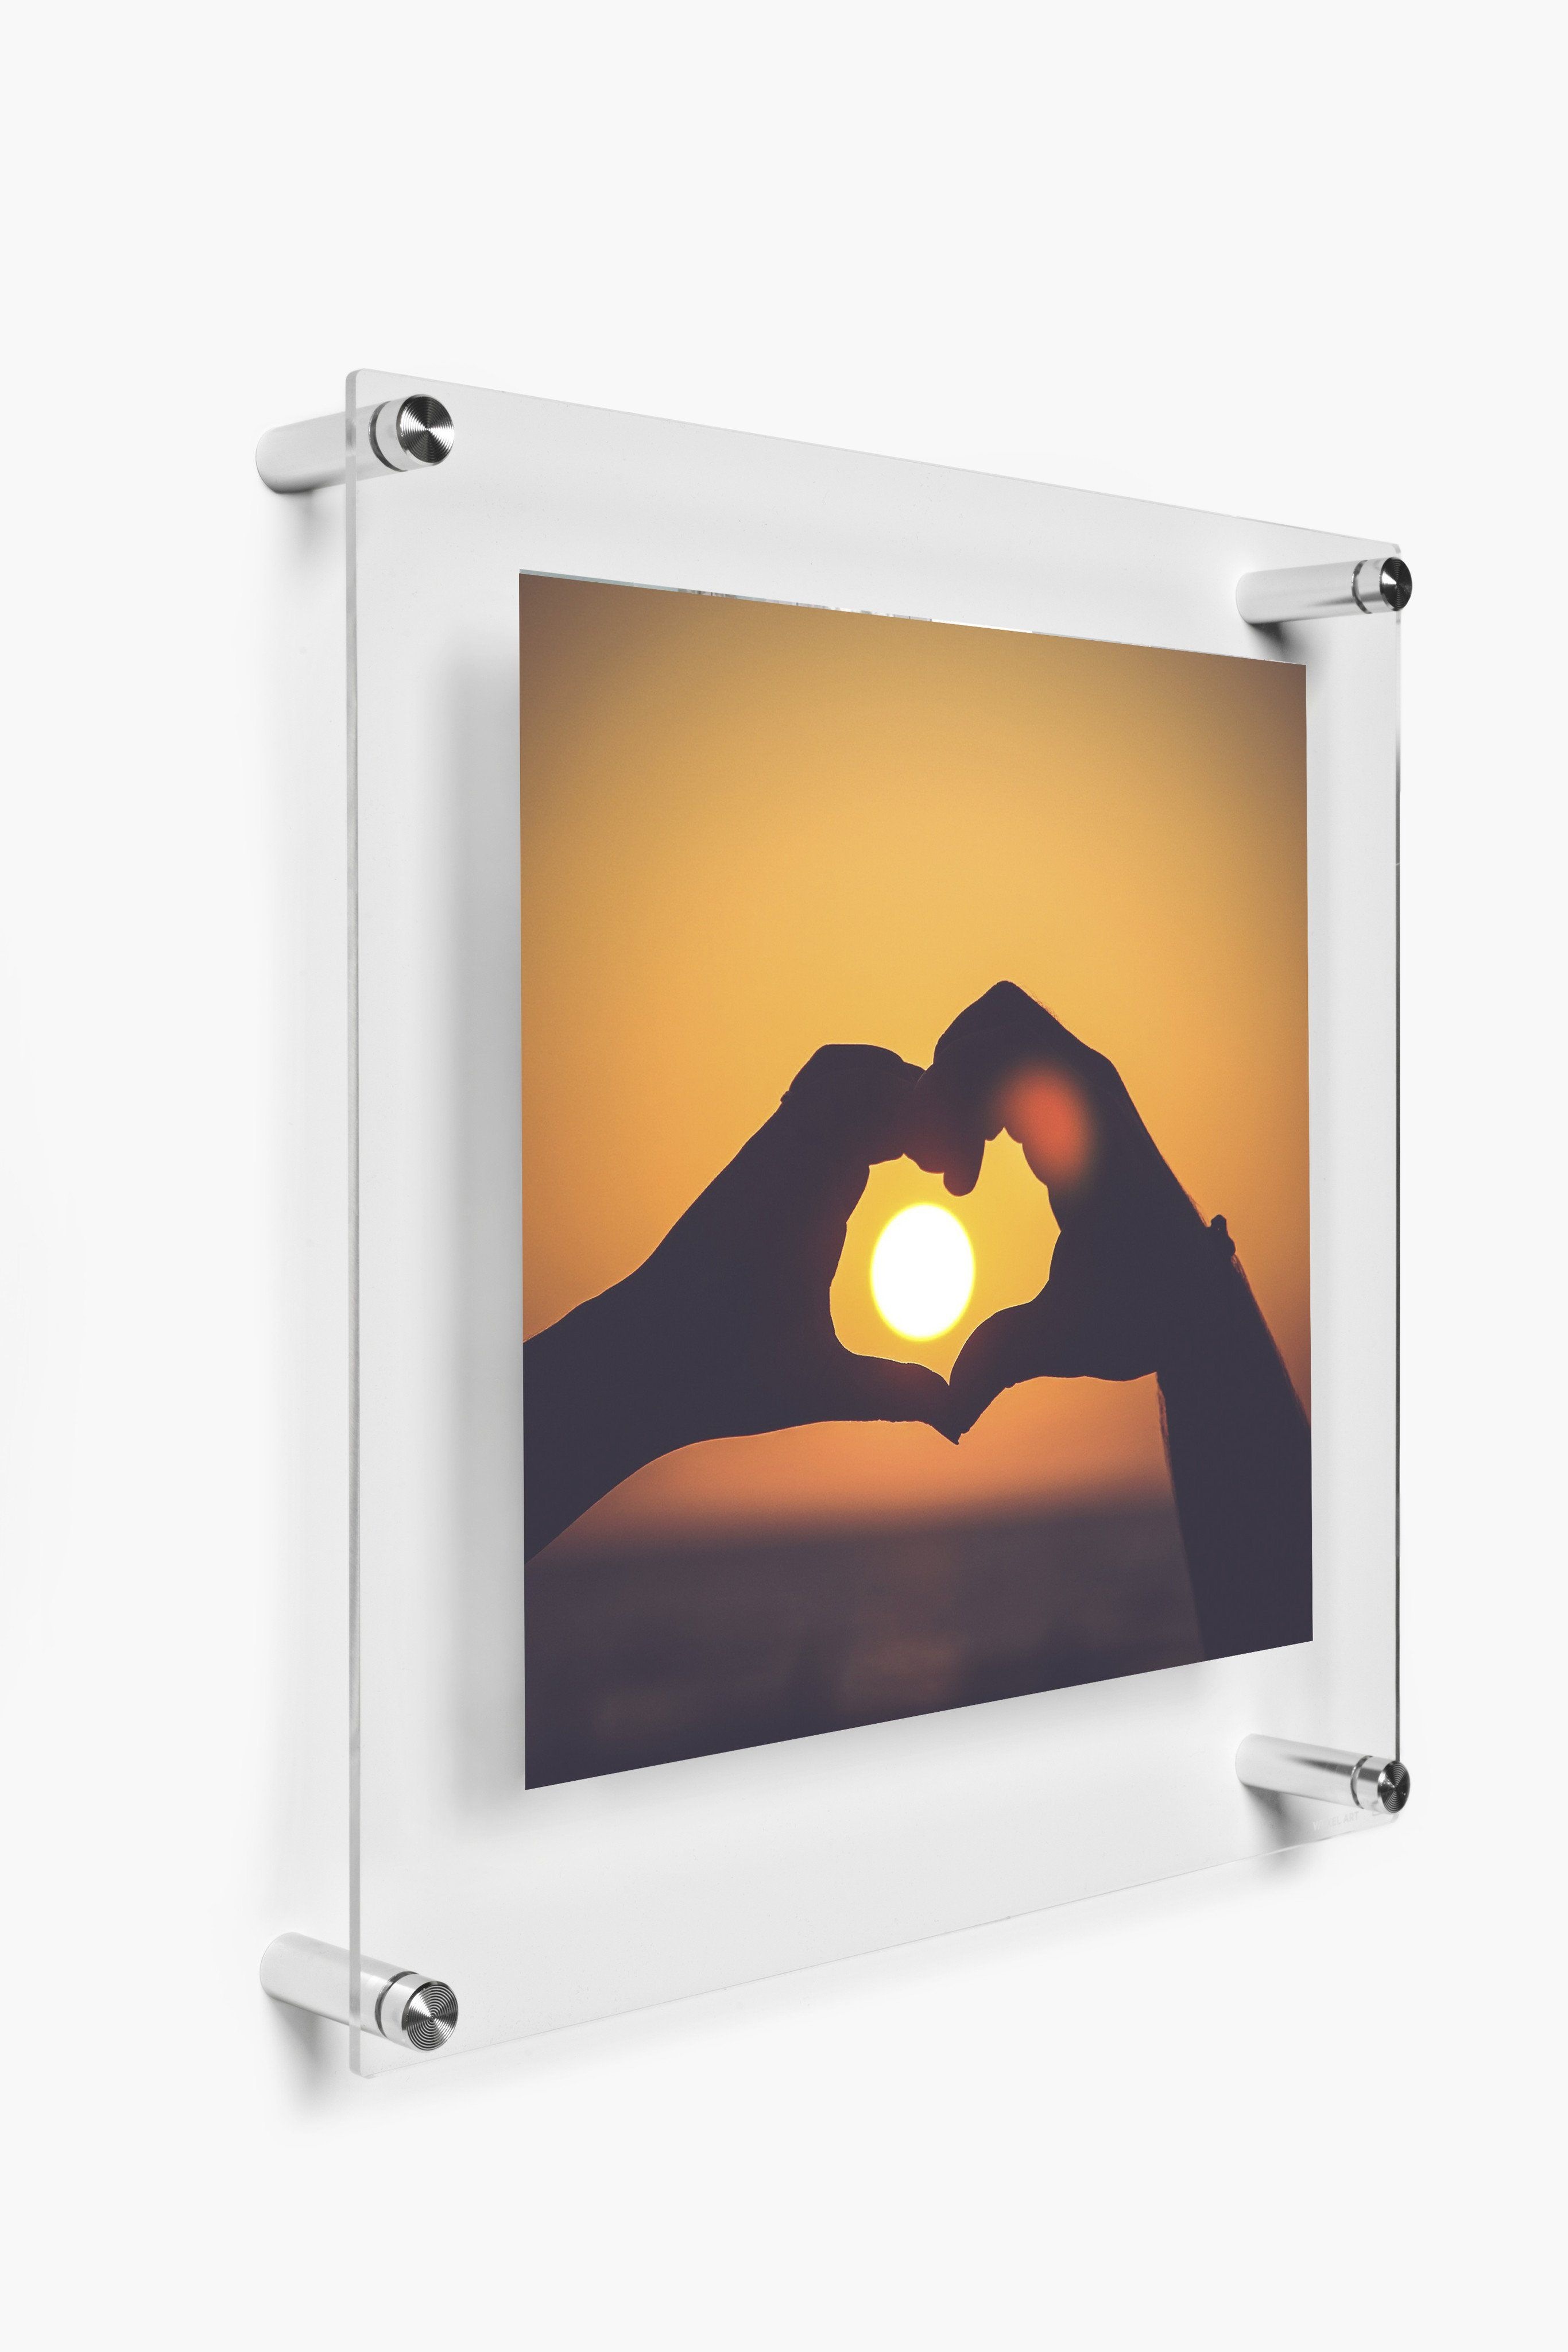 23 X 23 Double Panel Wall Frame For 20 X 20 Images From Wexel